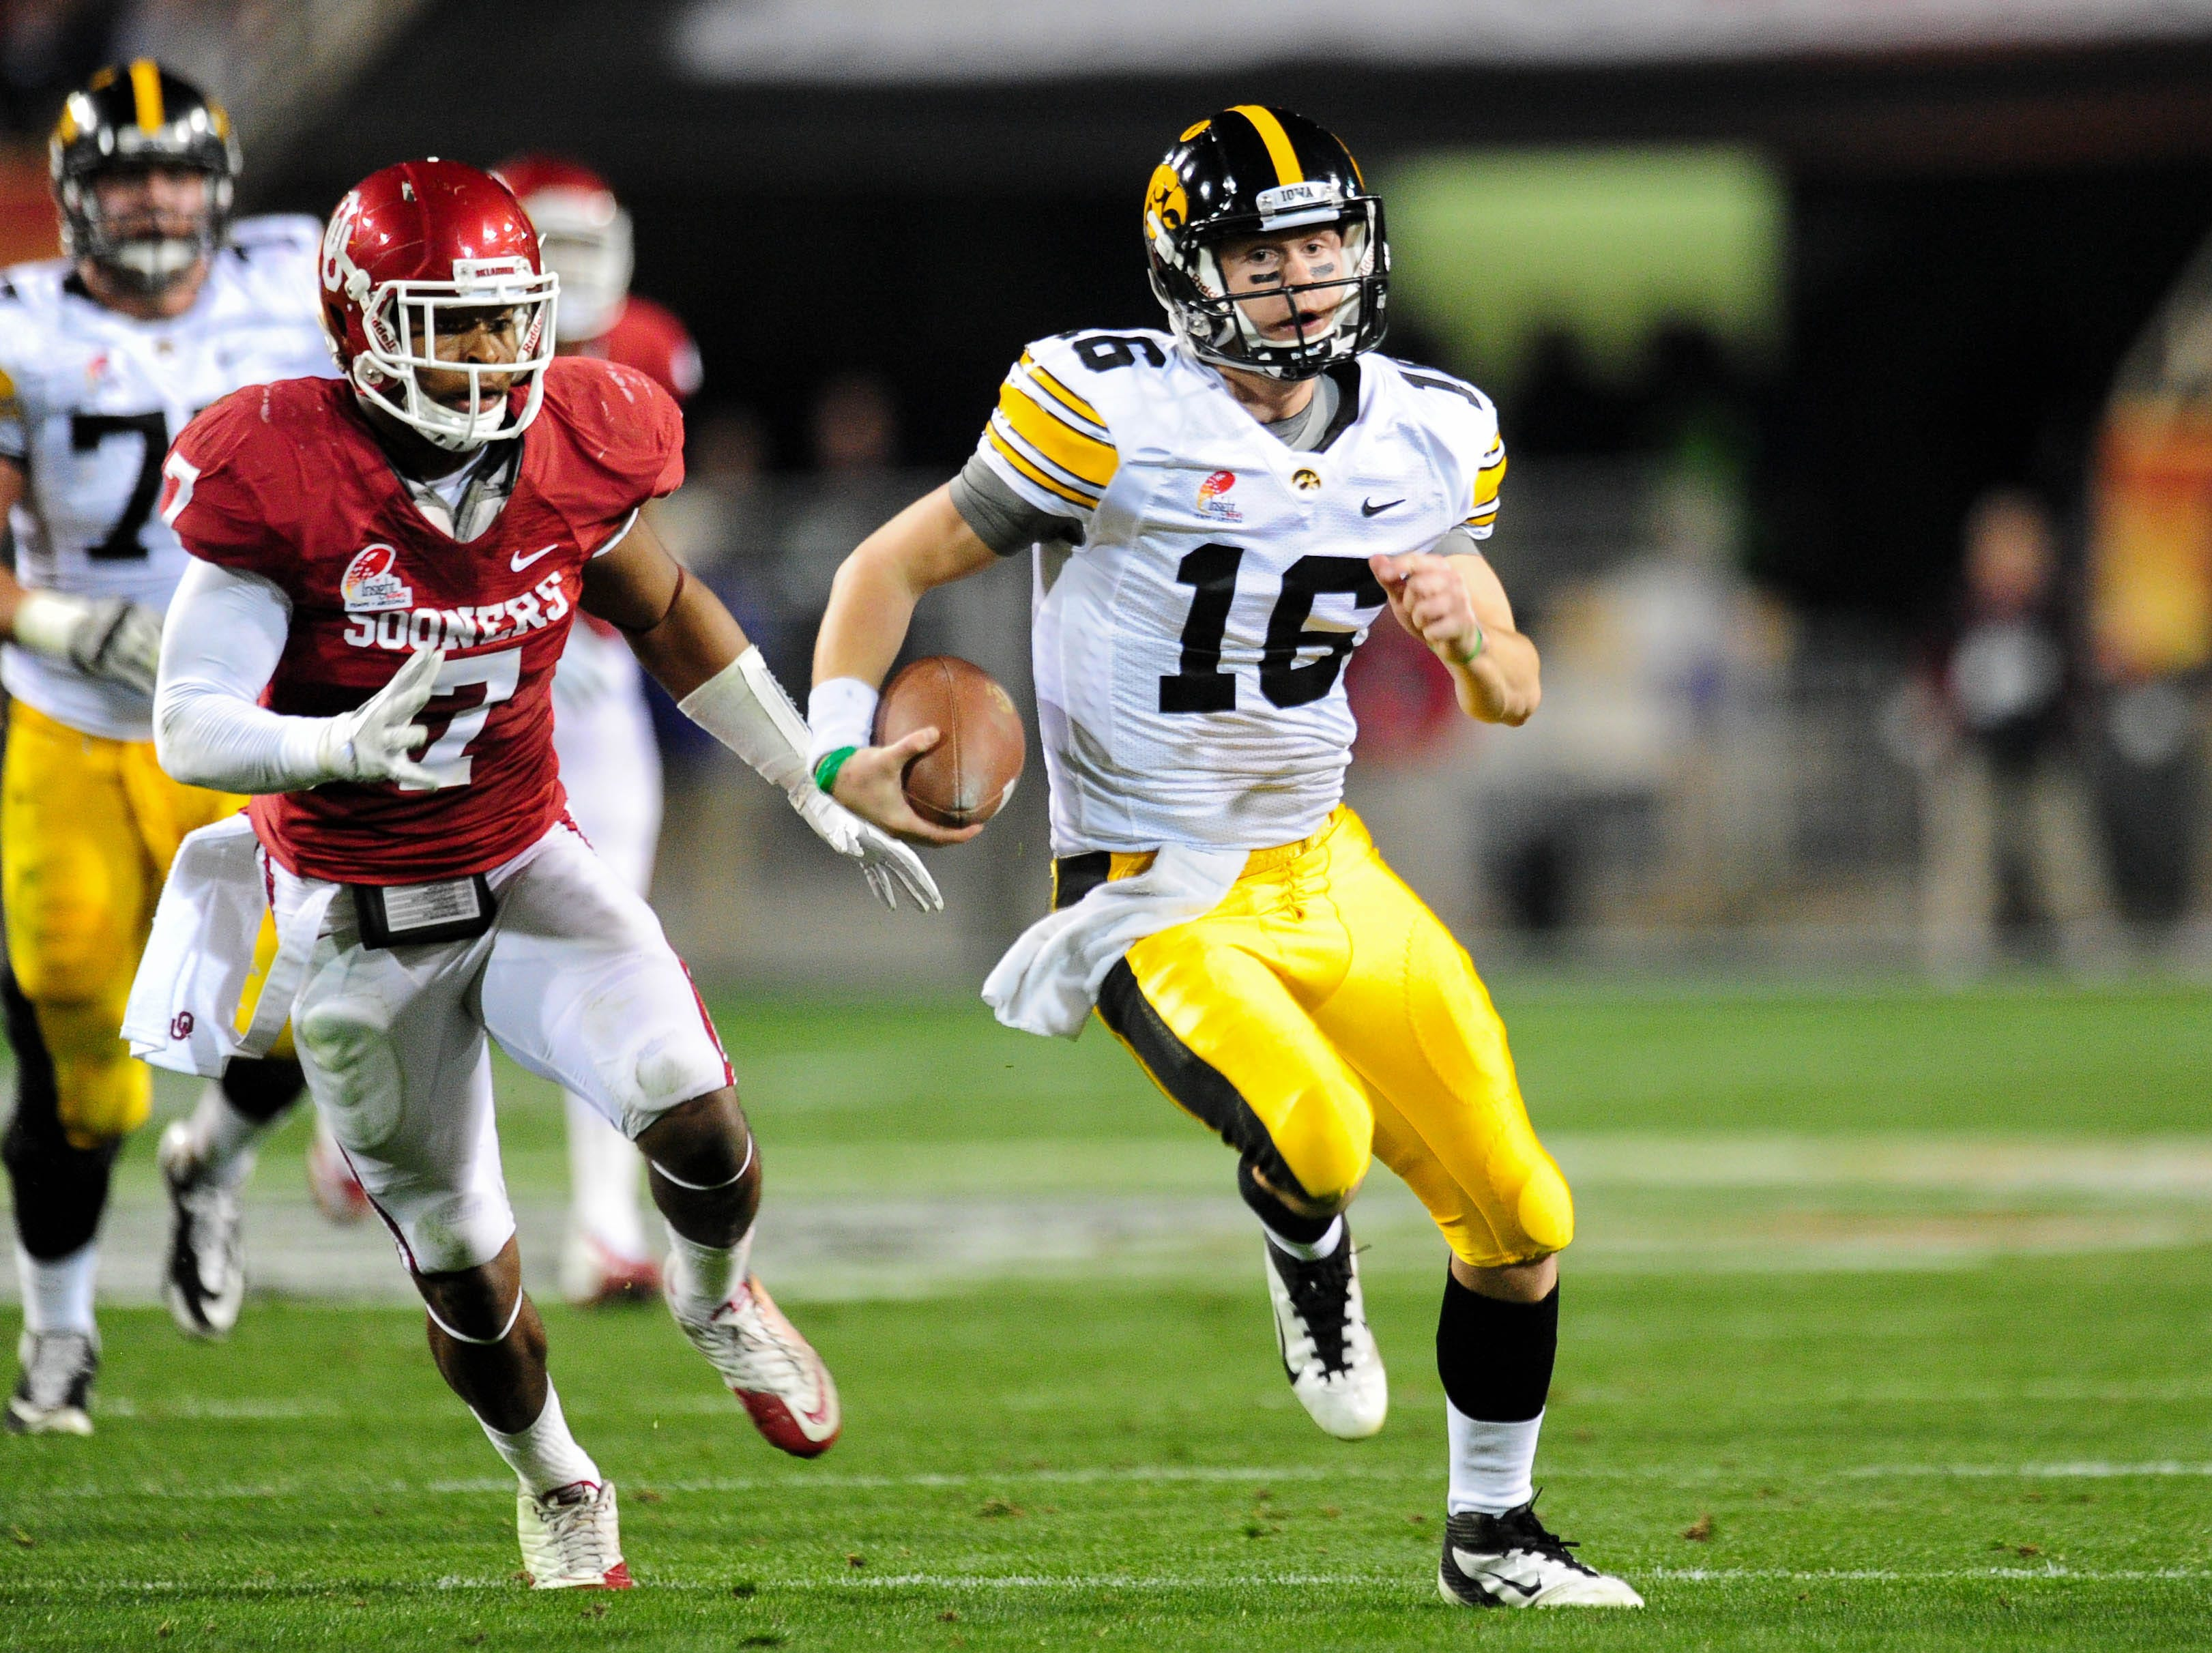 Dec. 30, 2011; Tempe, AZ, USA; Iowa Hawkeyes quarterback James Vandenberg (16) runs for a first down while being pursued by Oklahoma Sooners linebacker Corey Nelson (7) during the first half during  the 2011 Insight Bowl at Sun Devil Stadium.   Mandatory Credit: Matt Kartozian-USA TODAY Sports